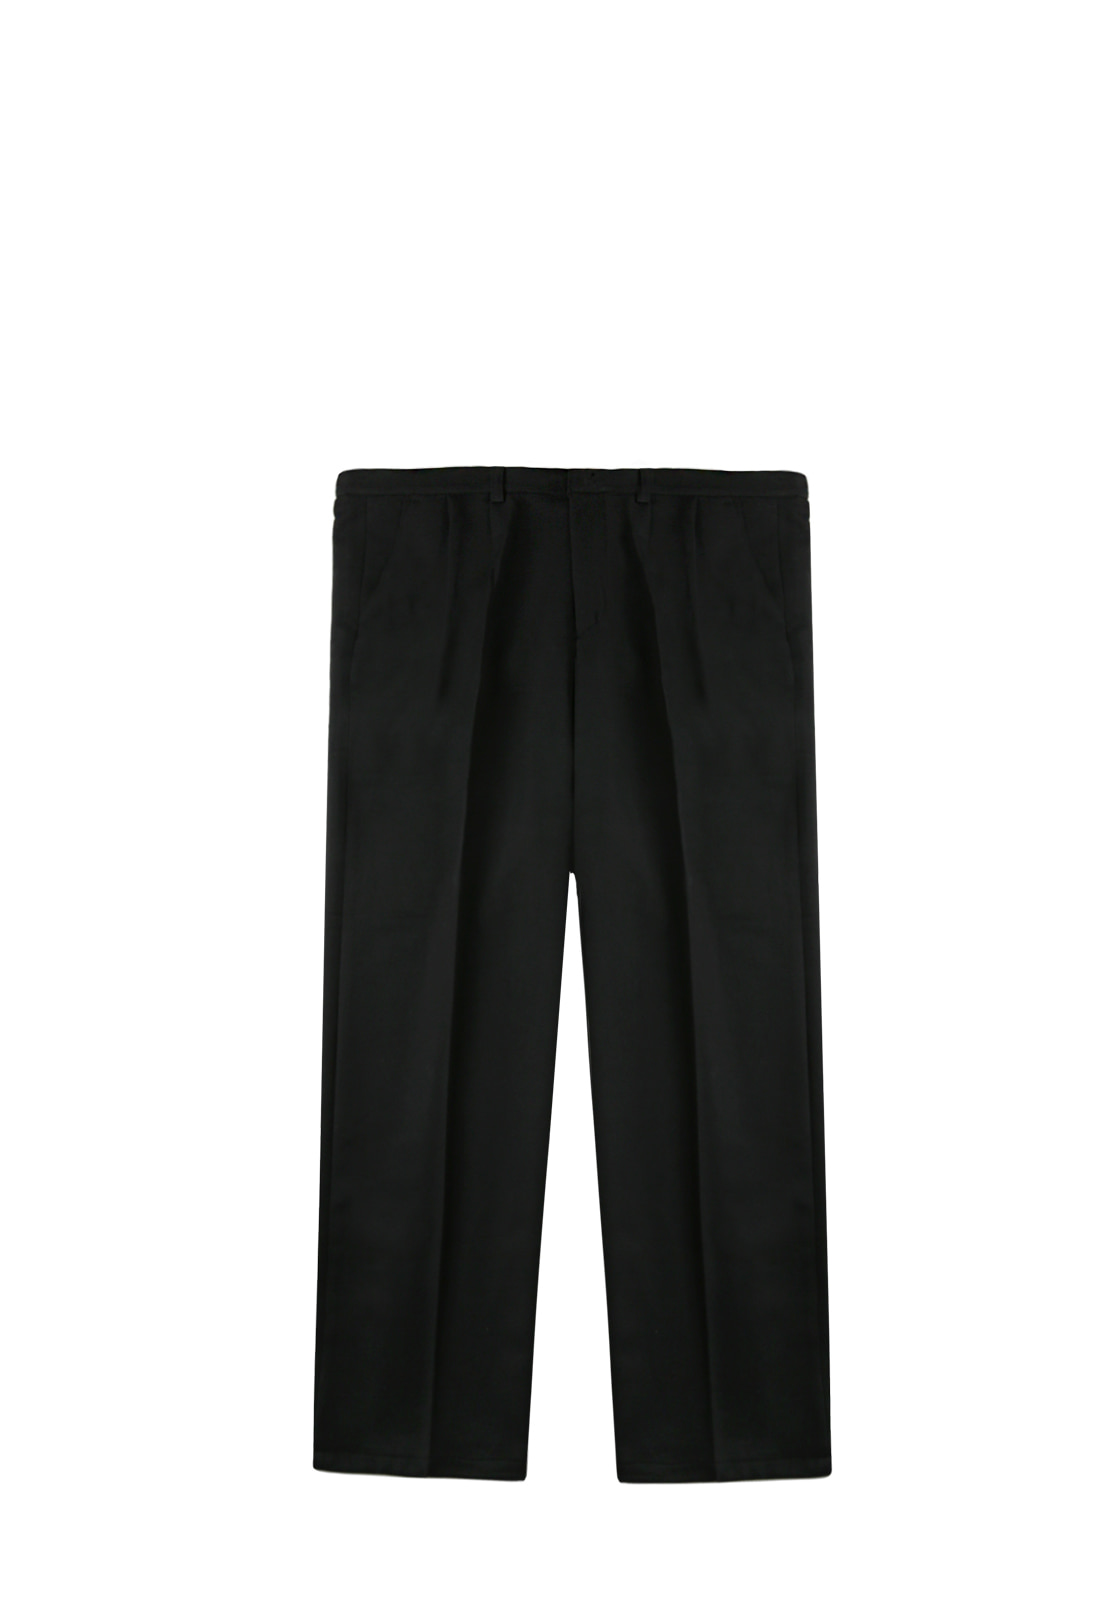 V230 TWO TUCK WIDE SLACKS  BLACK